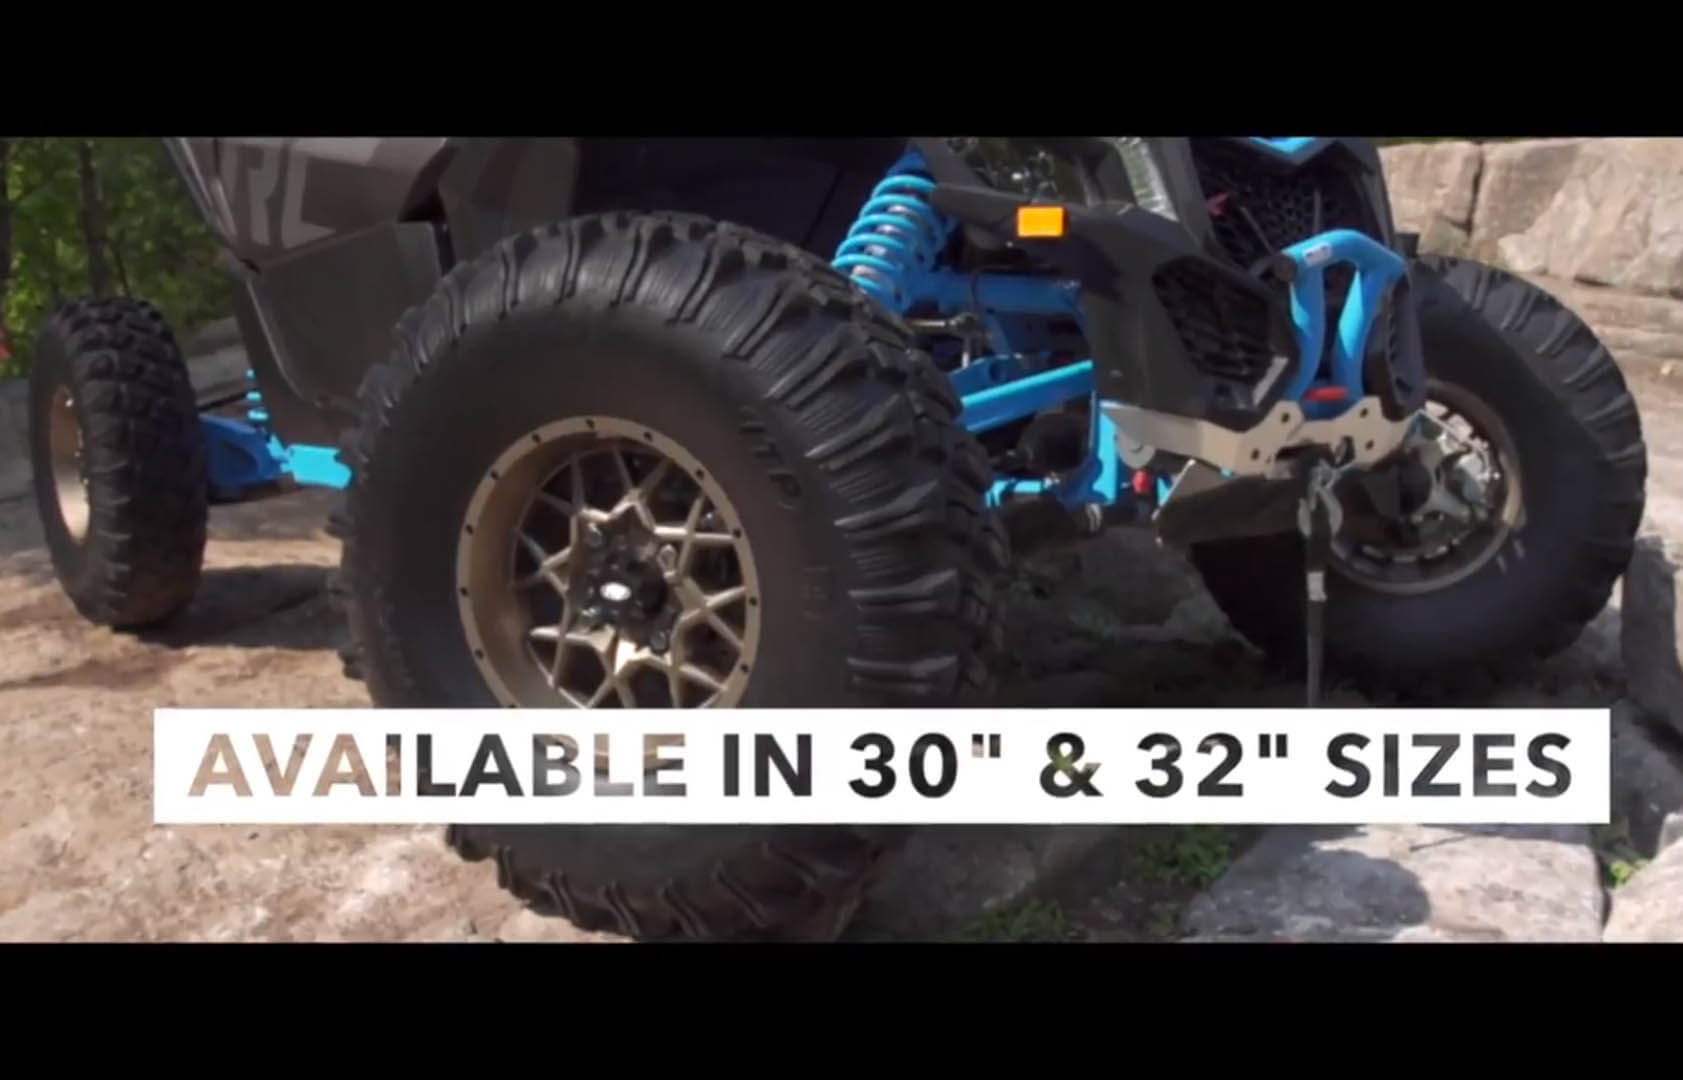 Versa Cross tire is specifically designed for high horsepower UTV and SxS vehicles and compliant with DOT standards.